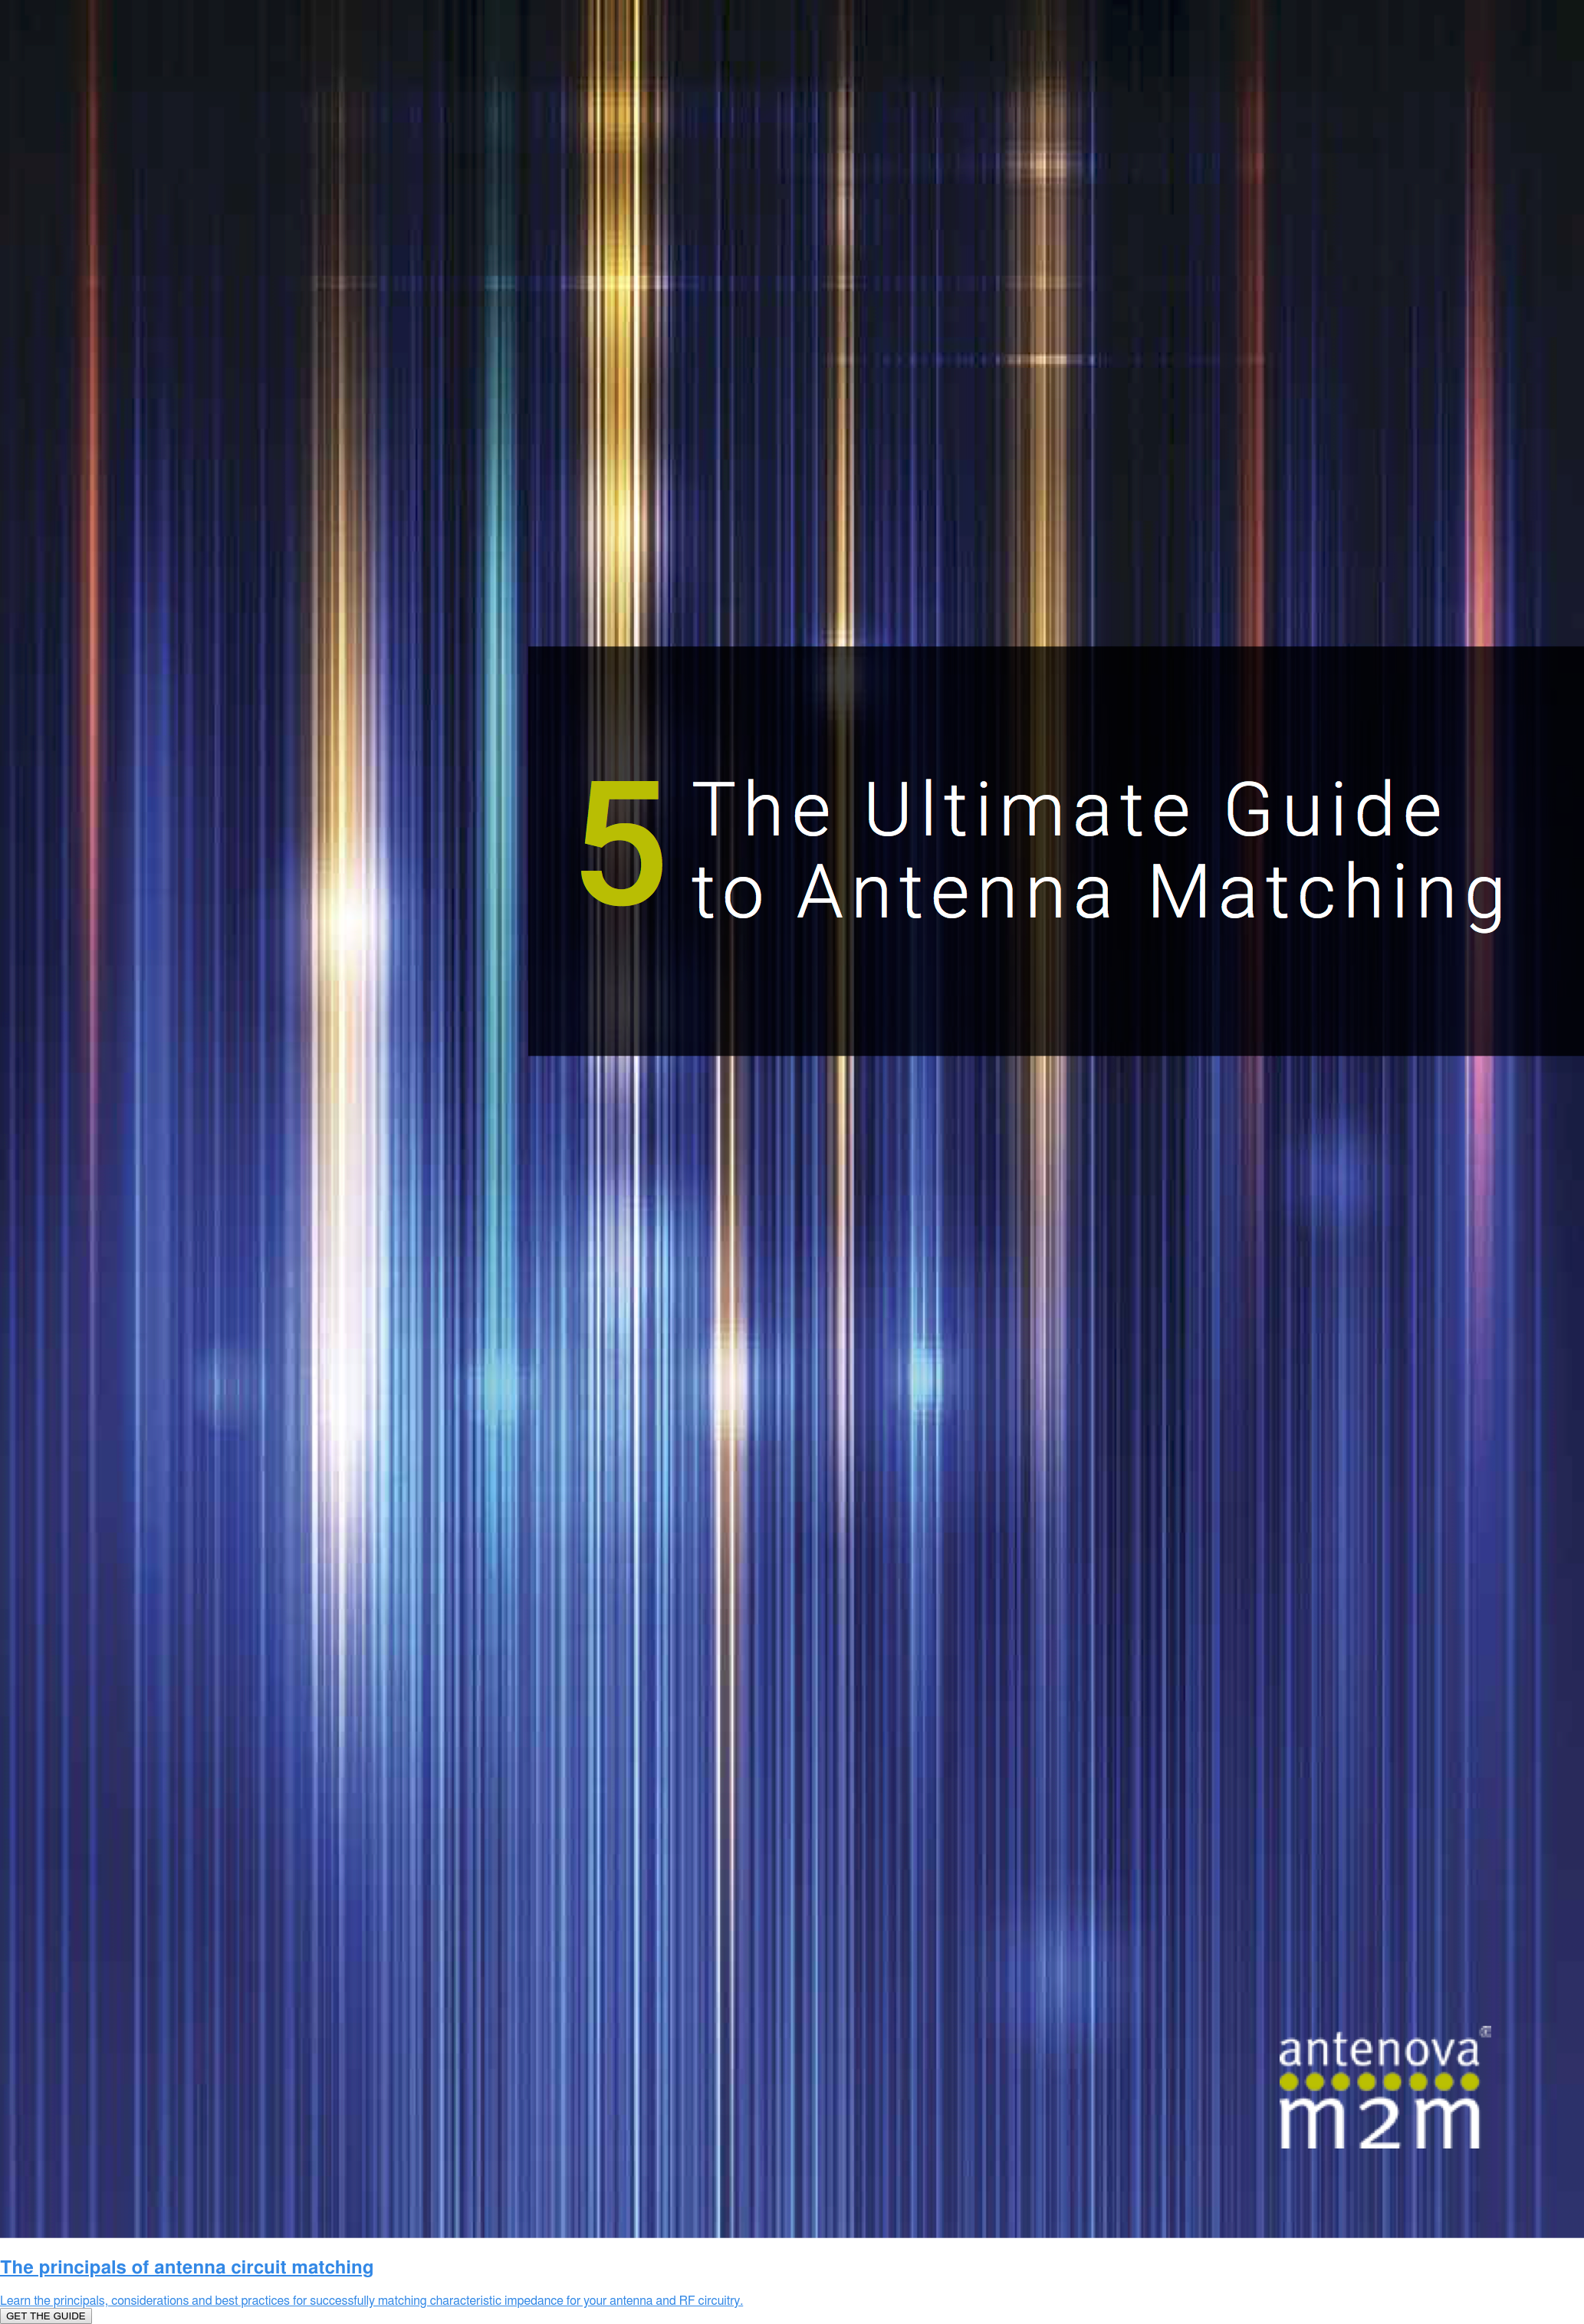 The principals of antenna circuit matching  Learn the principals, considerations and best practices for successfully  matching characteristic impedance for your antenna and RF circuitry.  GET THE GUIDE